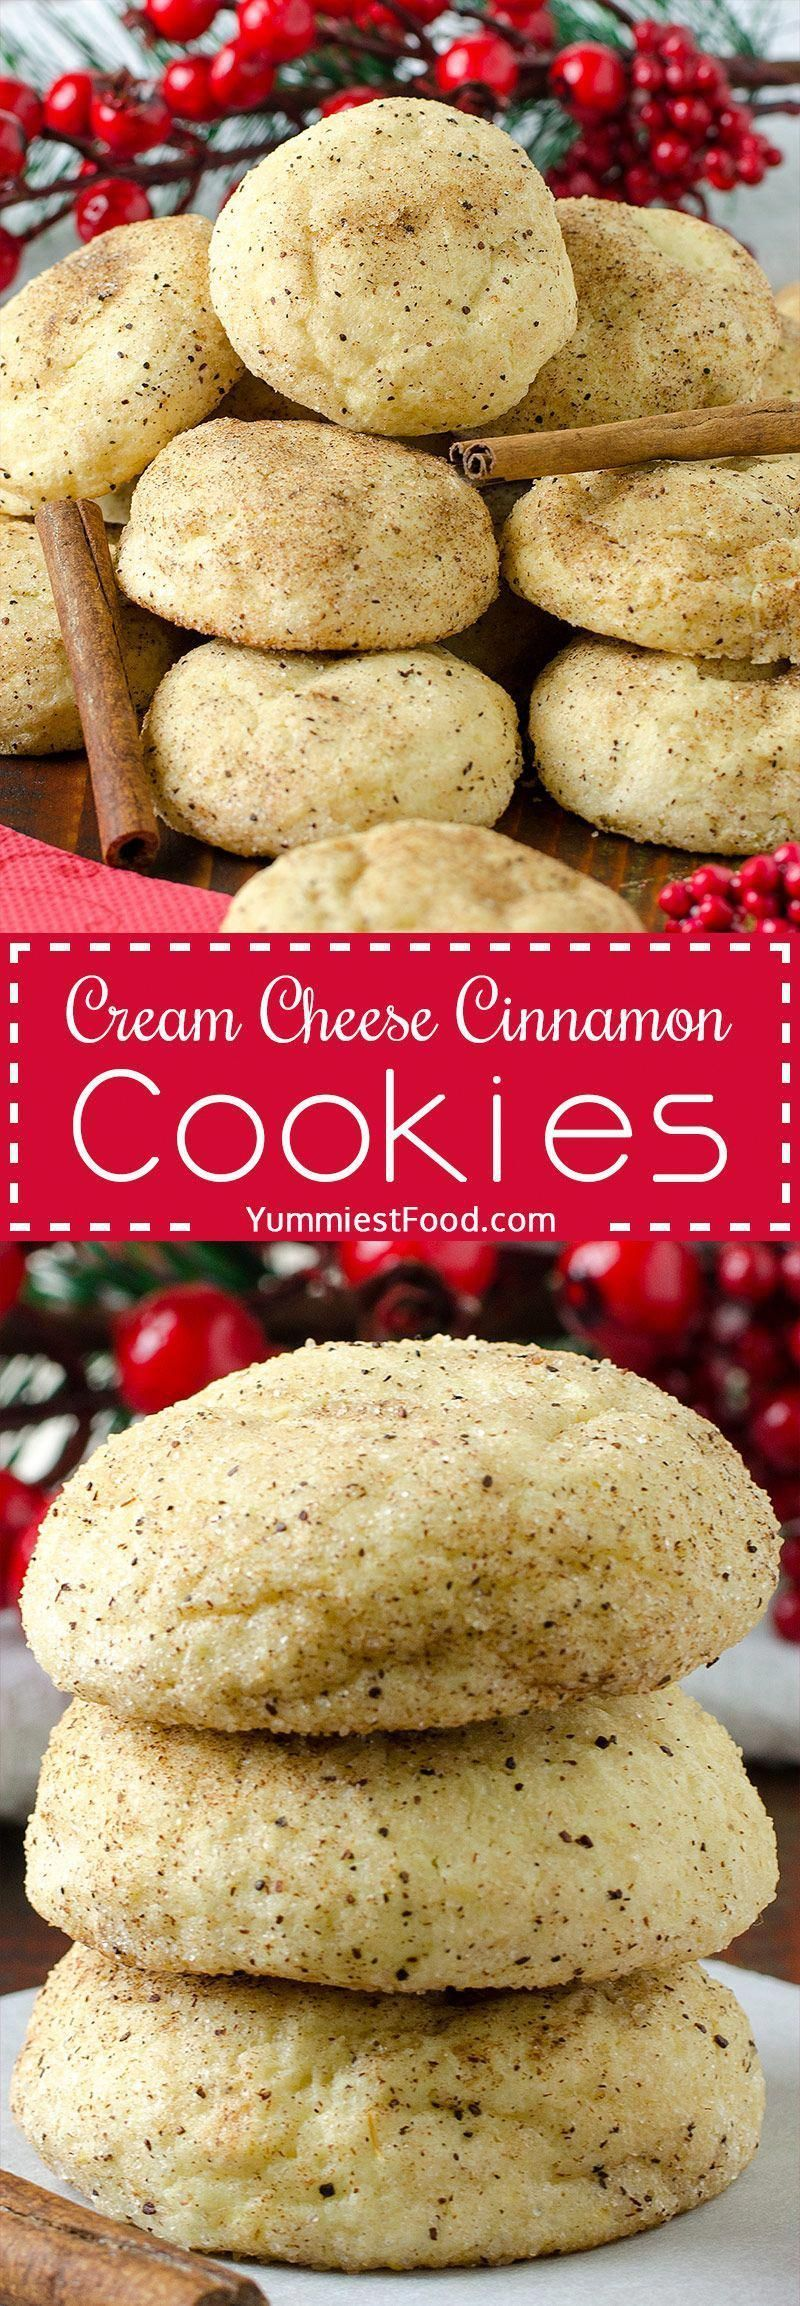 christmas food #weihnachten EASY CREAM CHEESE CINNAMON CHRISTMAS COOKIES - Easy and best cream cheese cinnamon cookies recipe ever! Perfect cookies for holidays! #christmas #christmasrecipes #dessertrecipes #dessertfoodrecipes #easyrecipes #cookies #easycookies #cookierecipe #christmascookies #cinnamon #cinnamoncookies #cookierecipes # Easy Cream Cheese Cinnamon Christmas Cookies #creamcheeserecipes